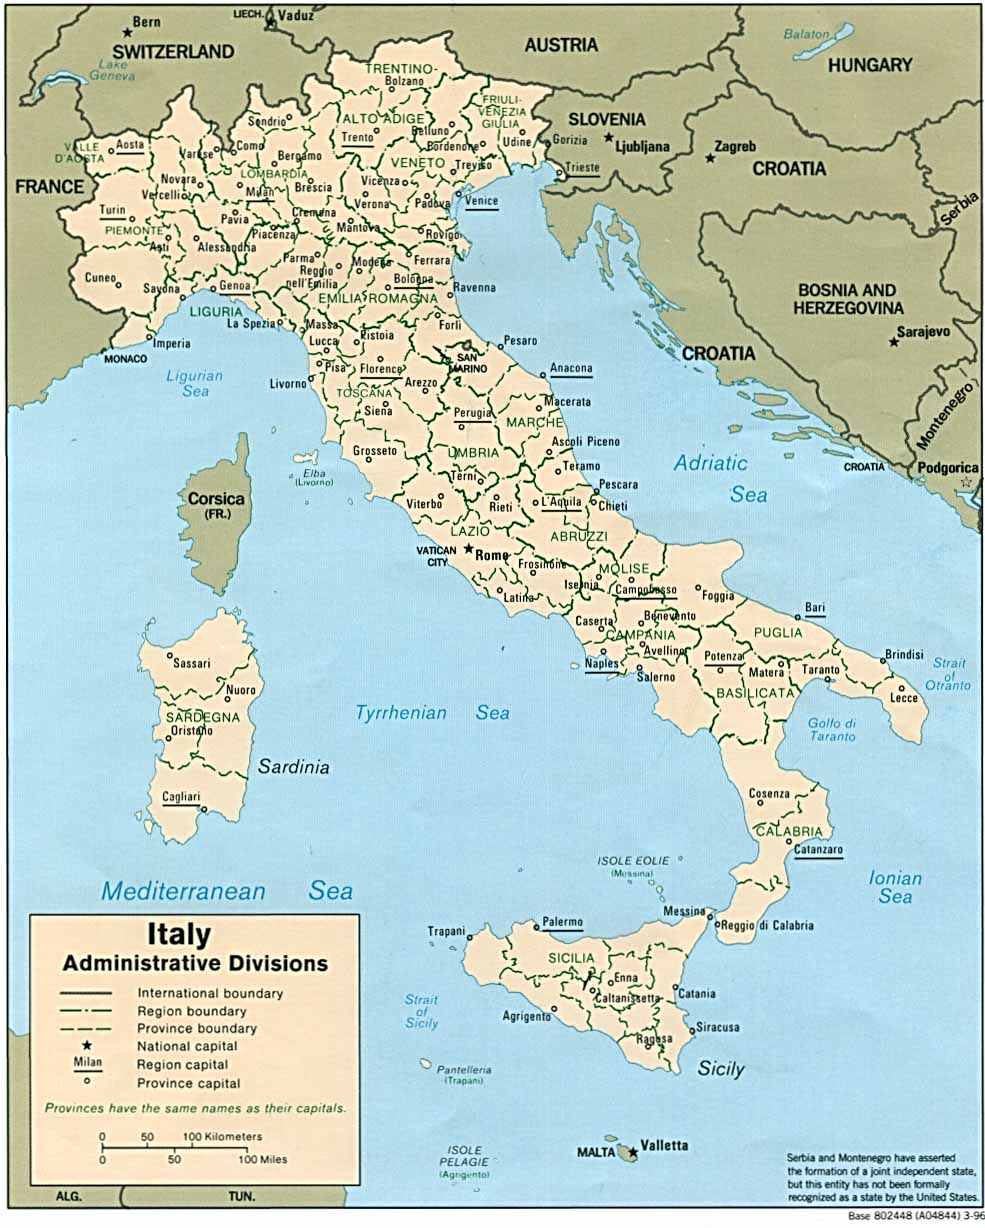 Italy Maps - Perry-Castañeda Map Collection - UT Library Online